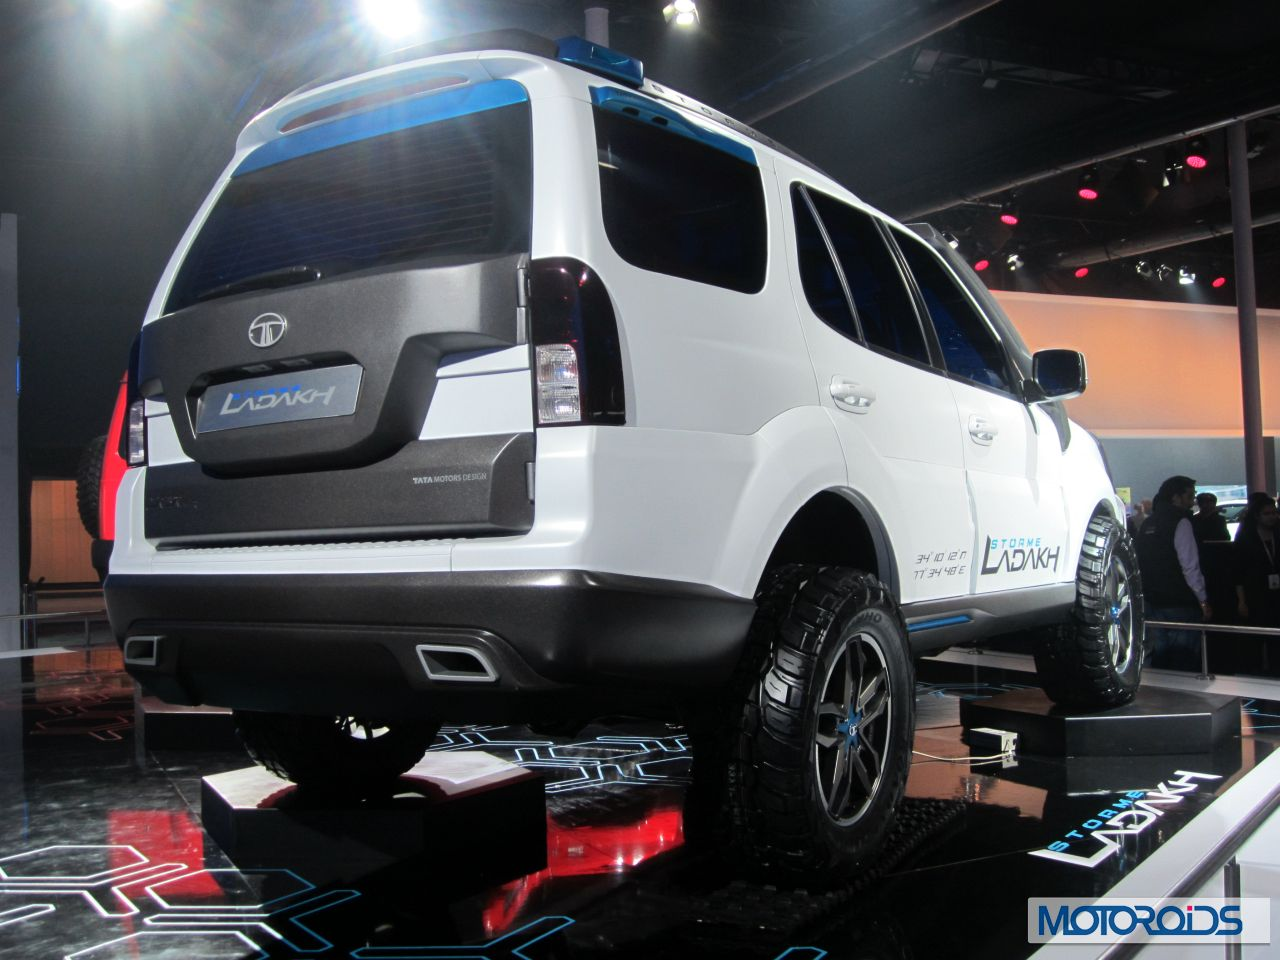 Some of the highlights of the Tata Safari Storme Ladakh concept are :